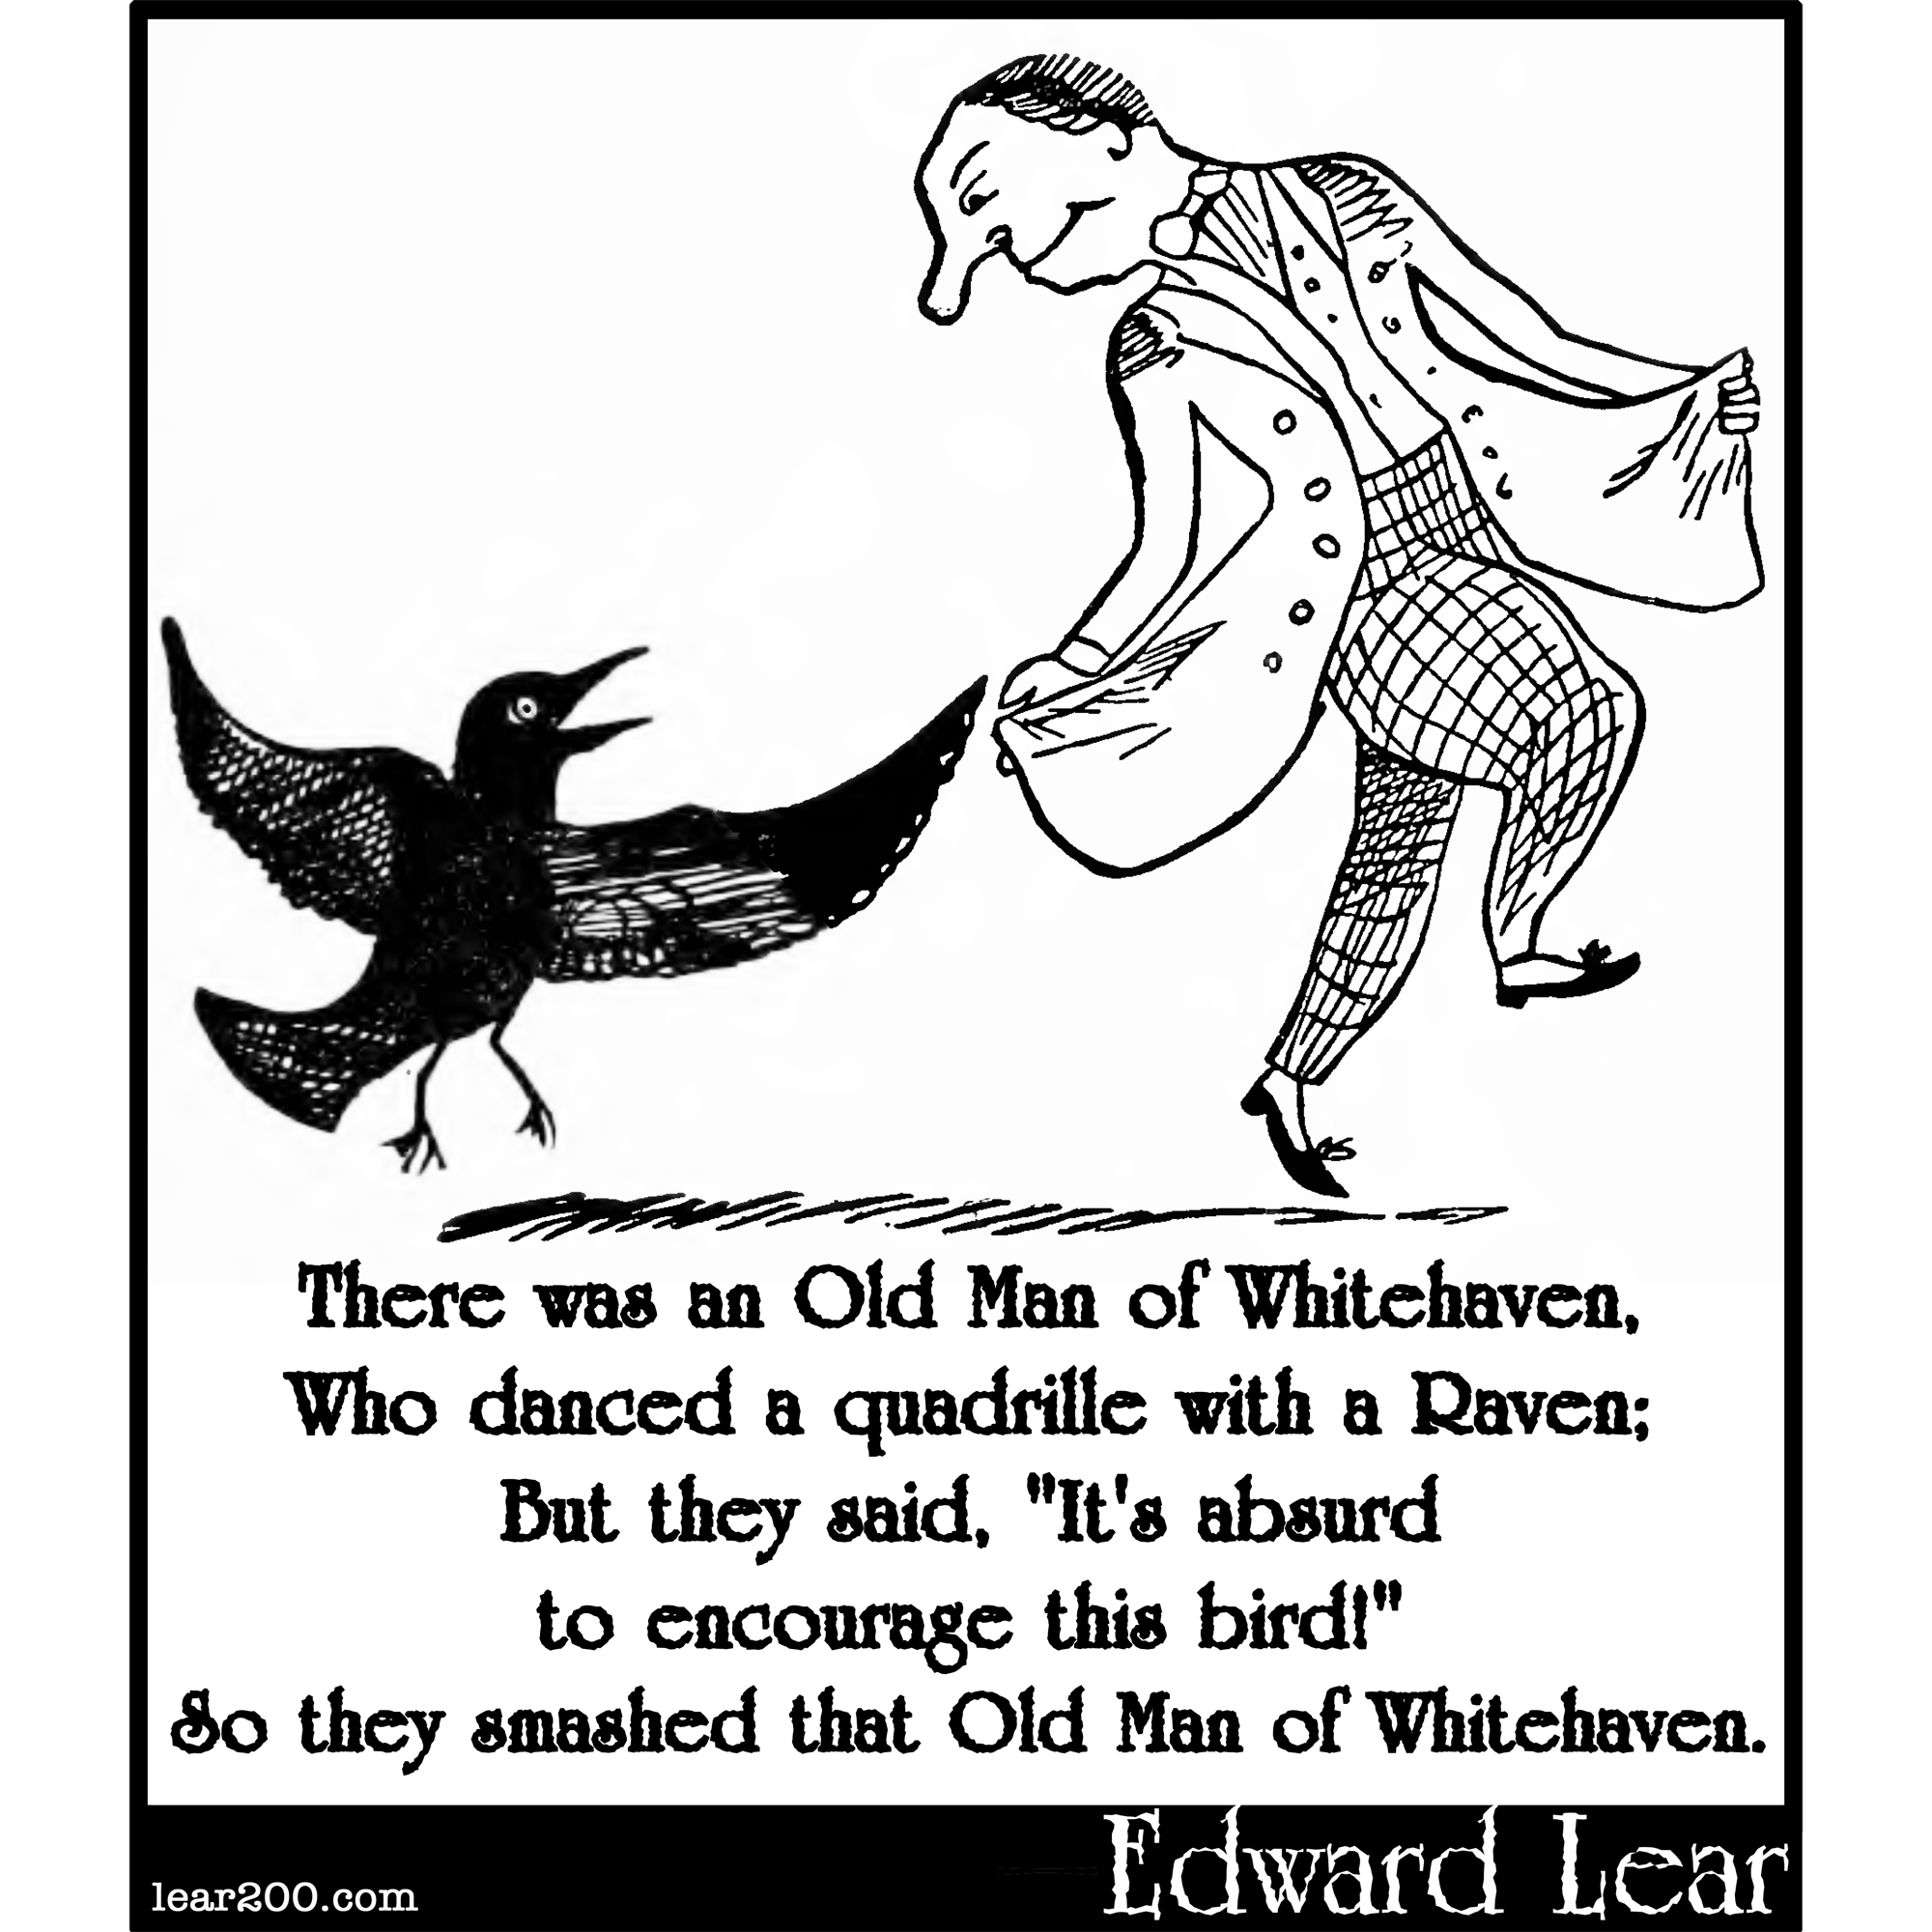 There was an Old Man of Whitehaven